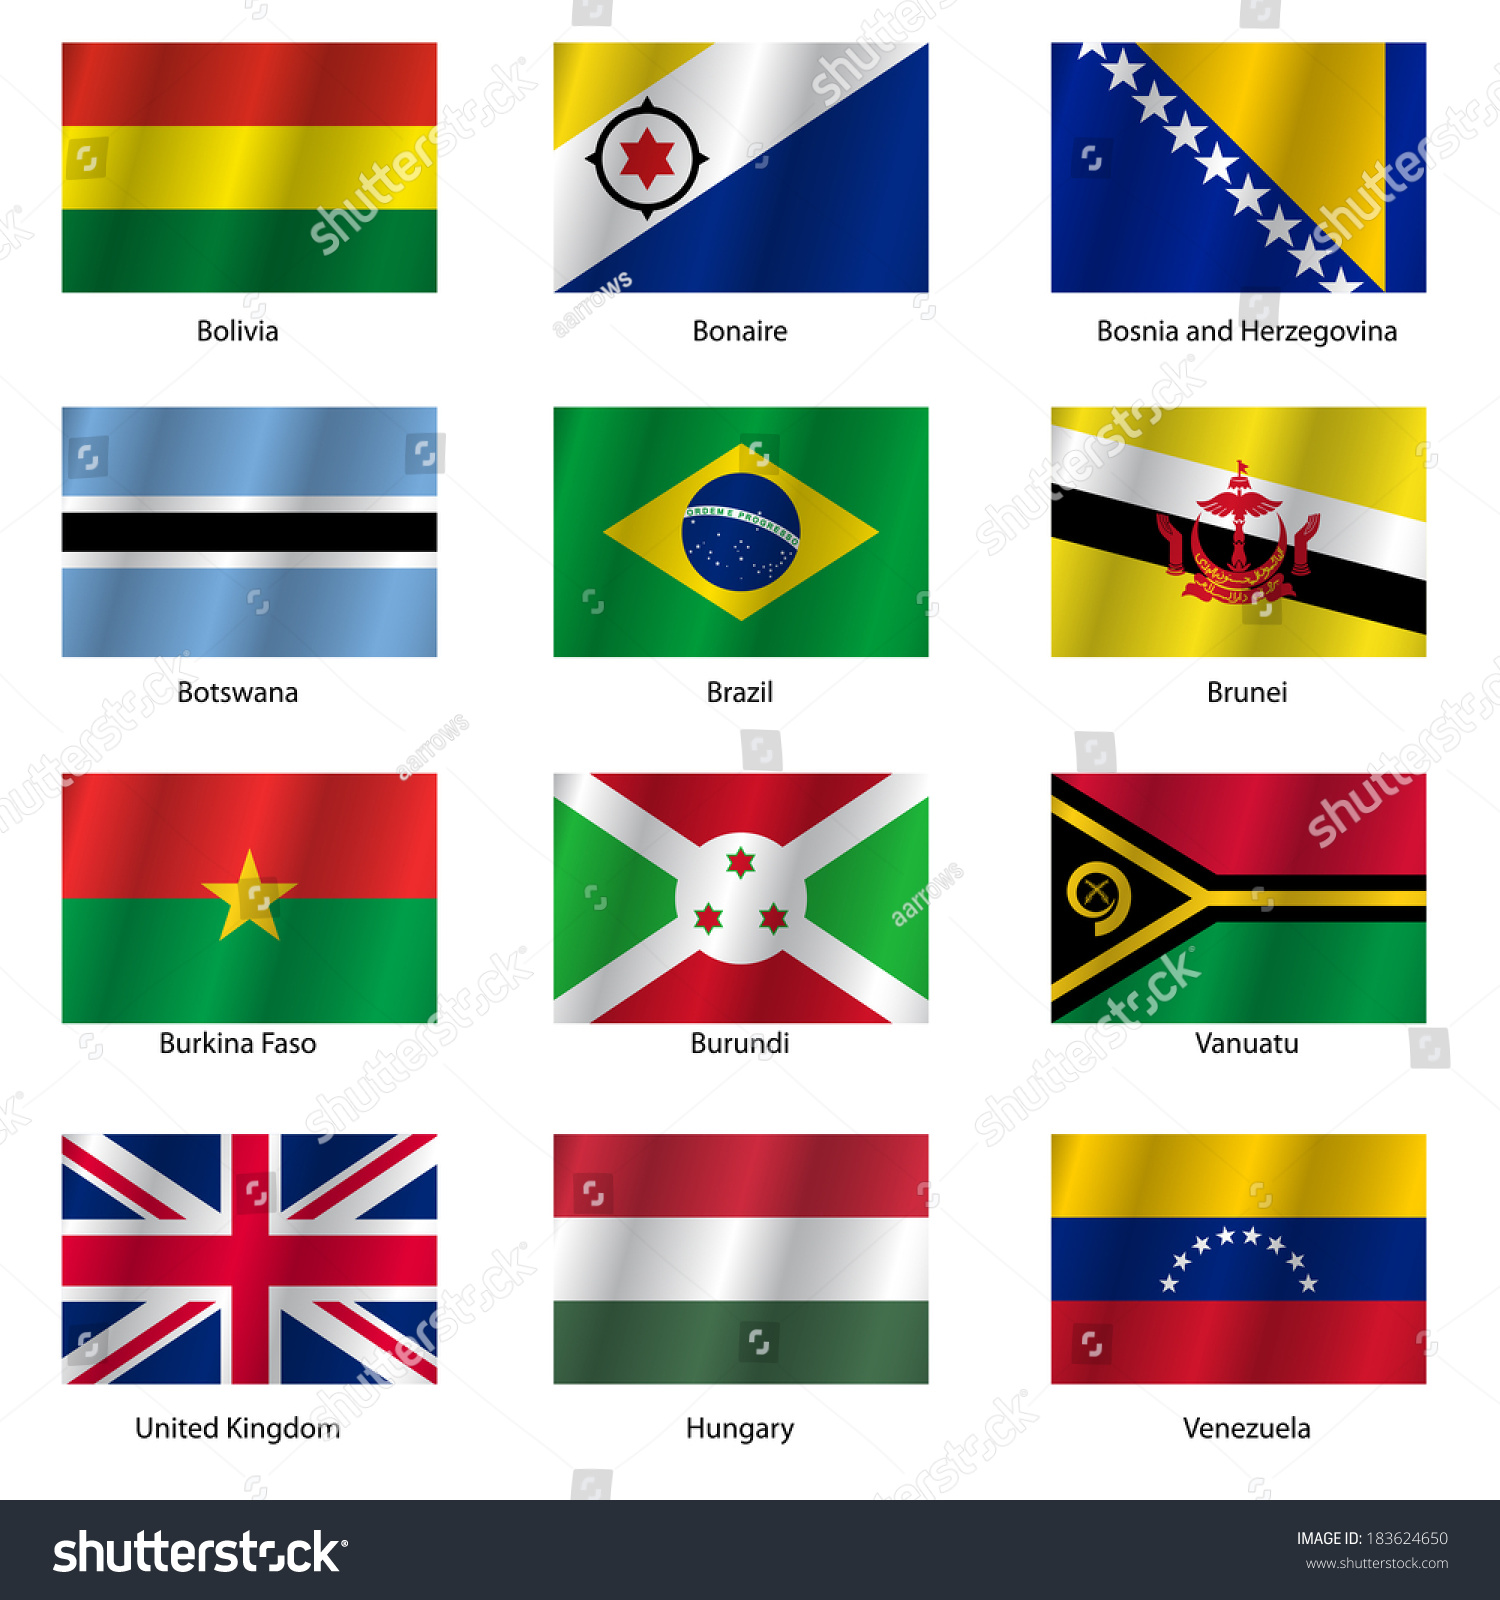 Set Flags World Sovereign States Vector Stock Vector 183624650 ...